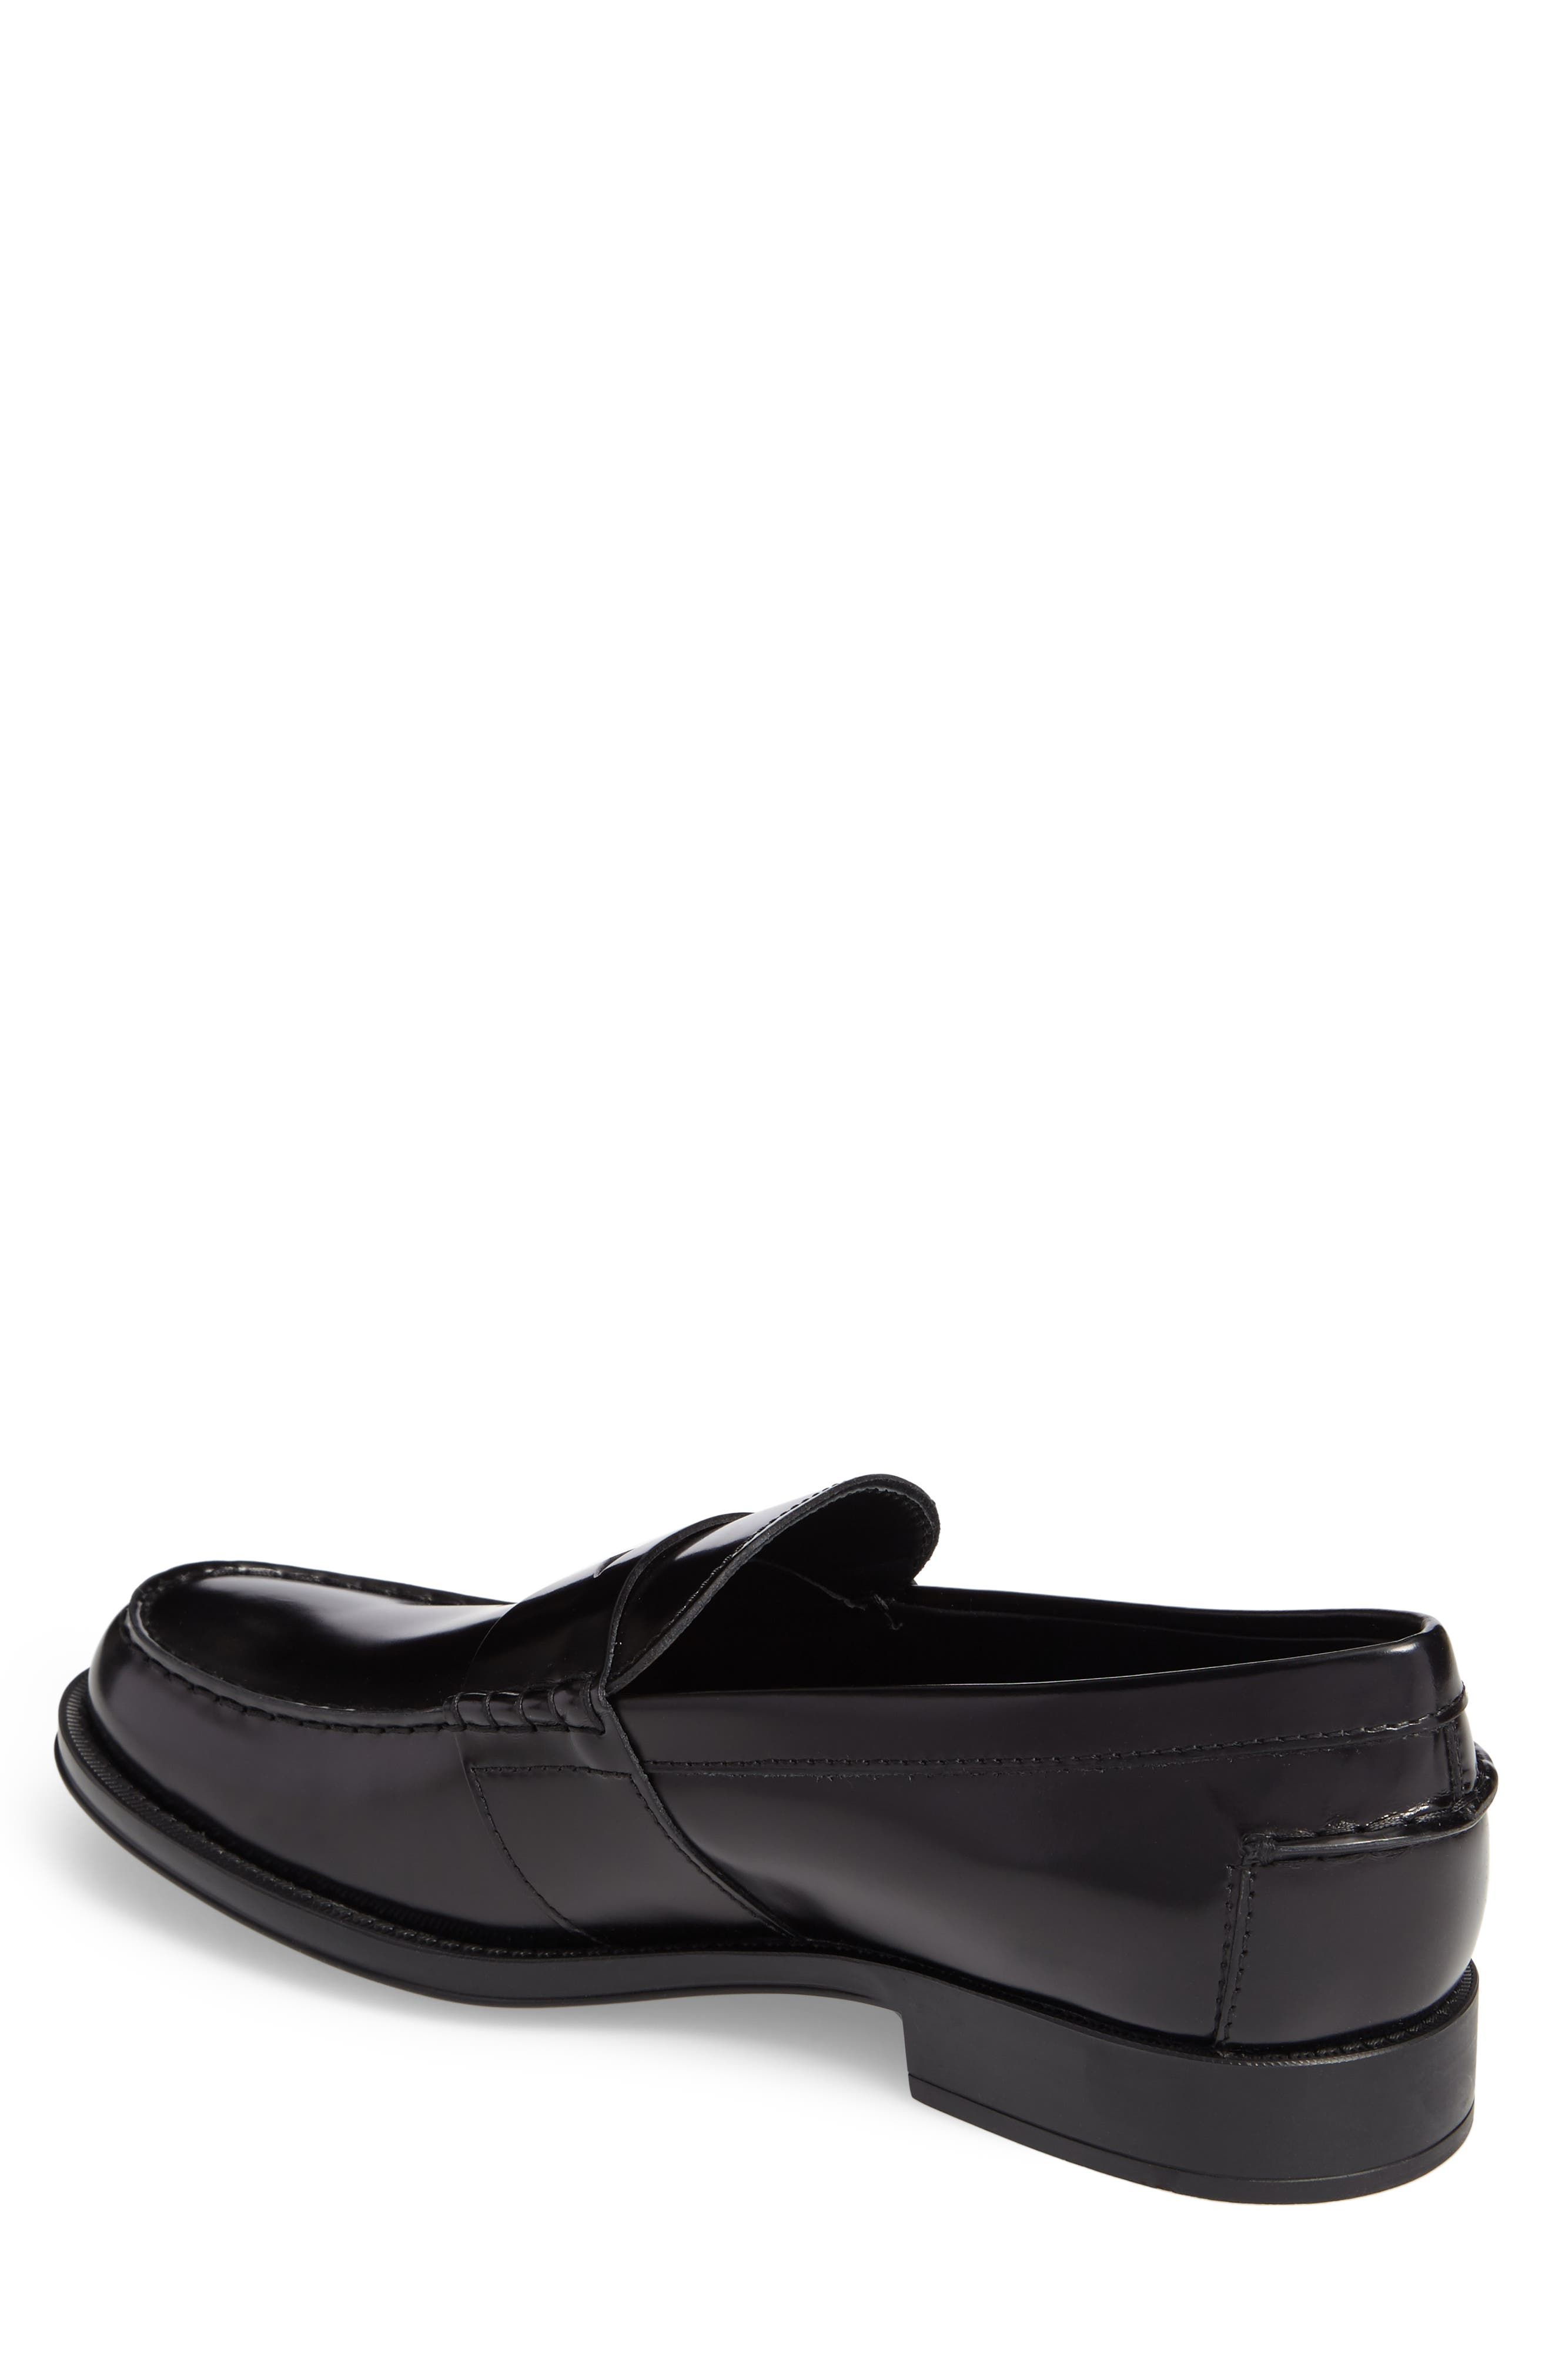 Tods Penny Loafer,                             Alternate thumbnail 2, color,                             001